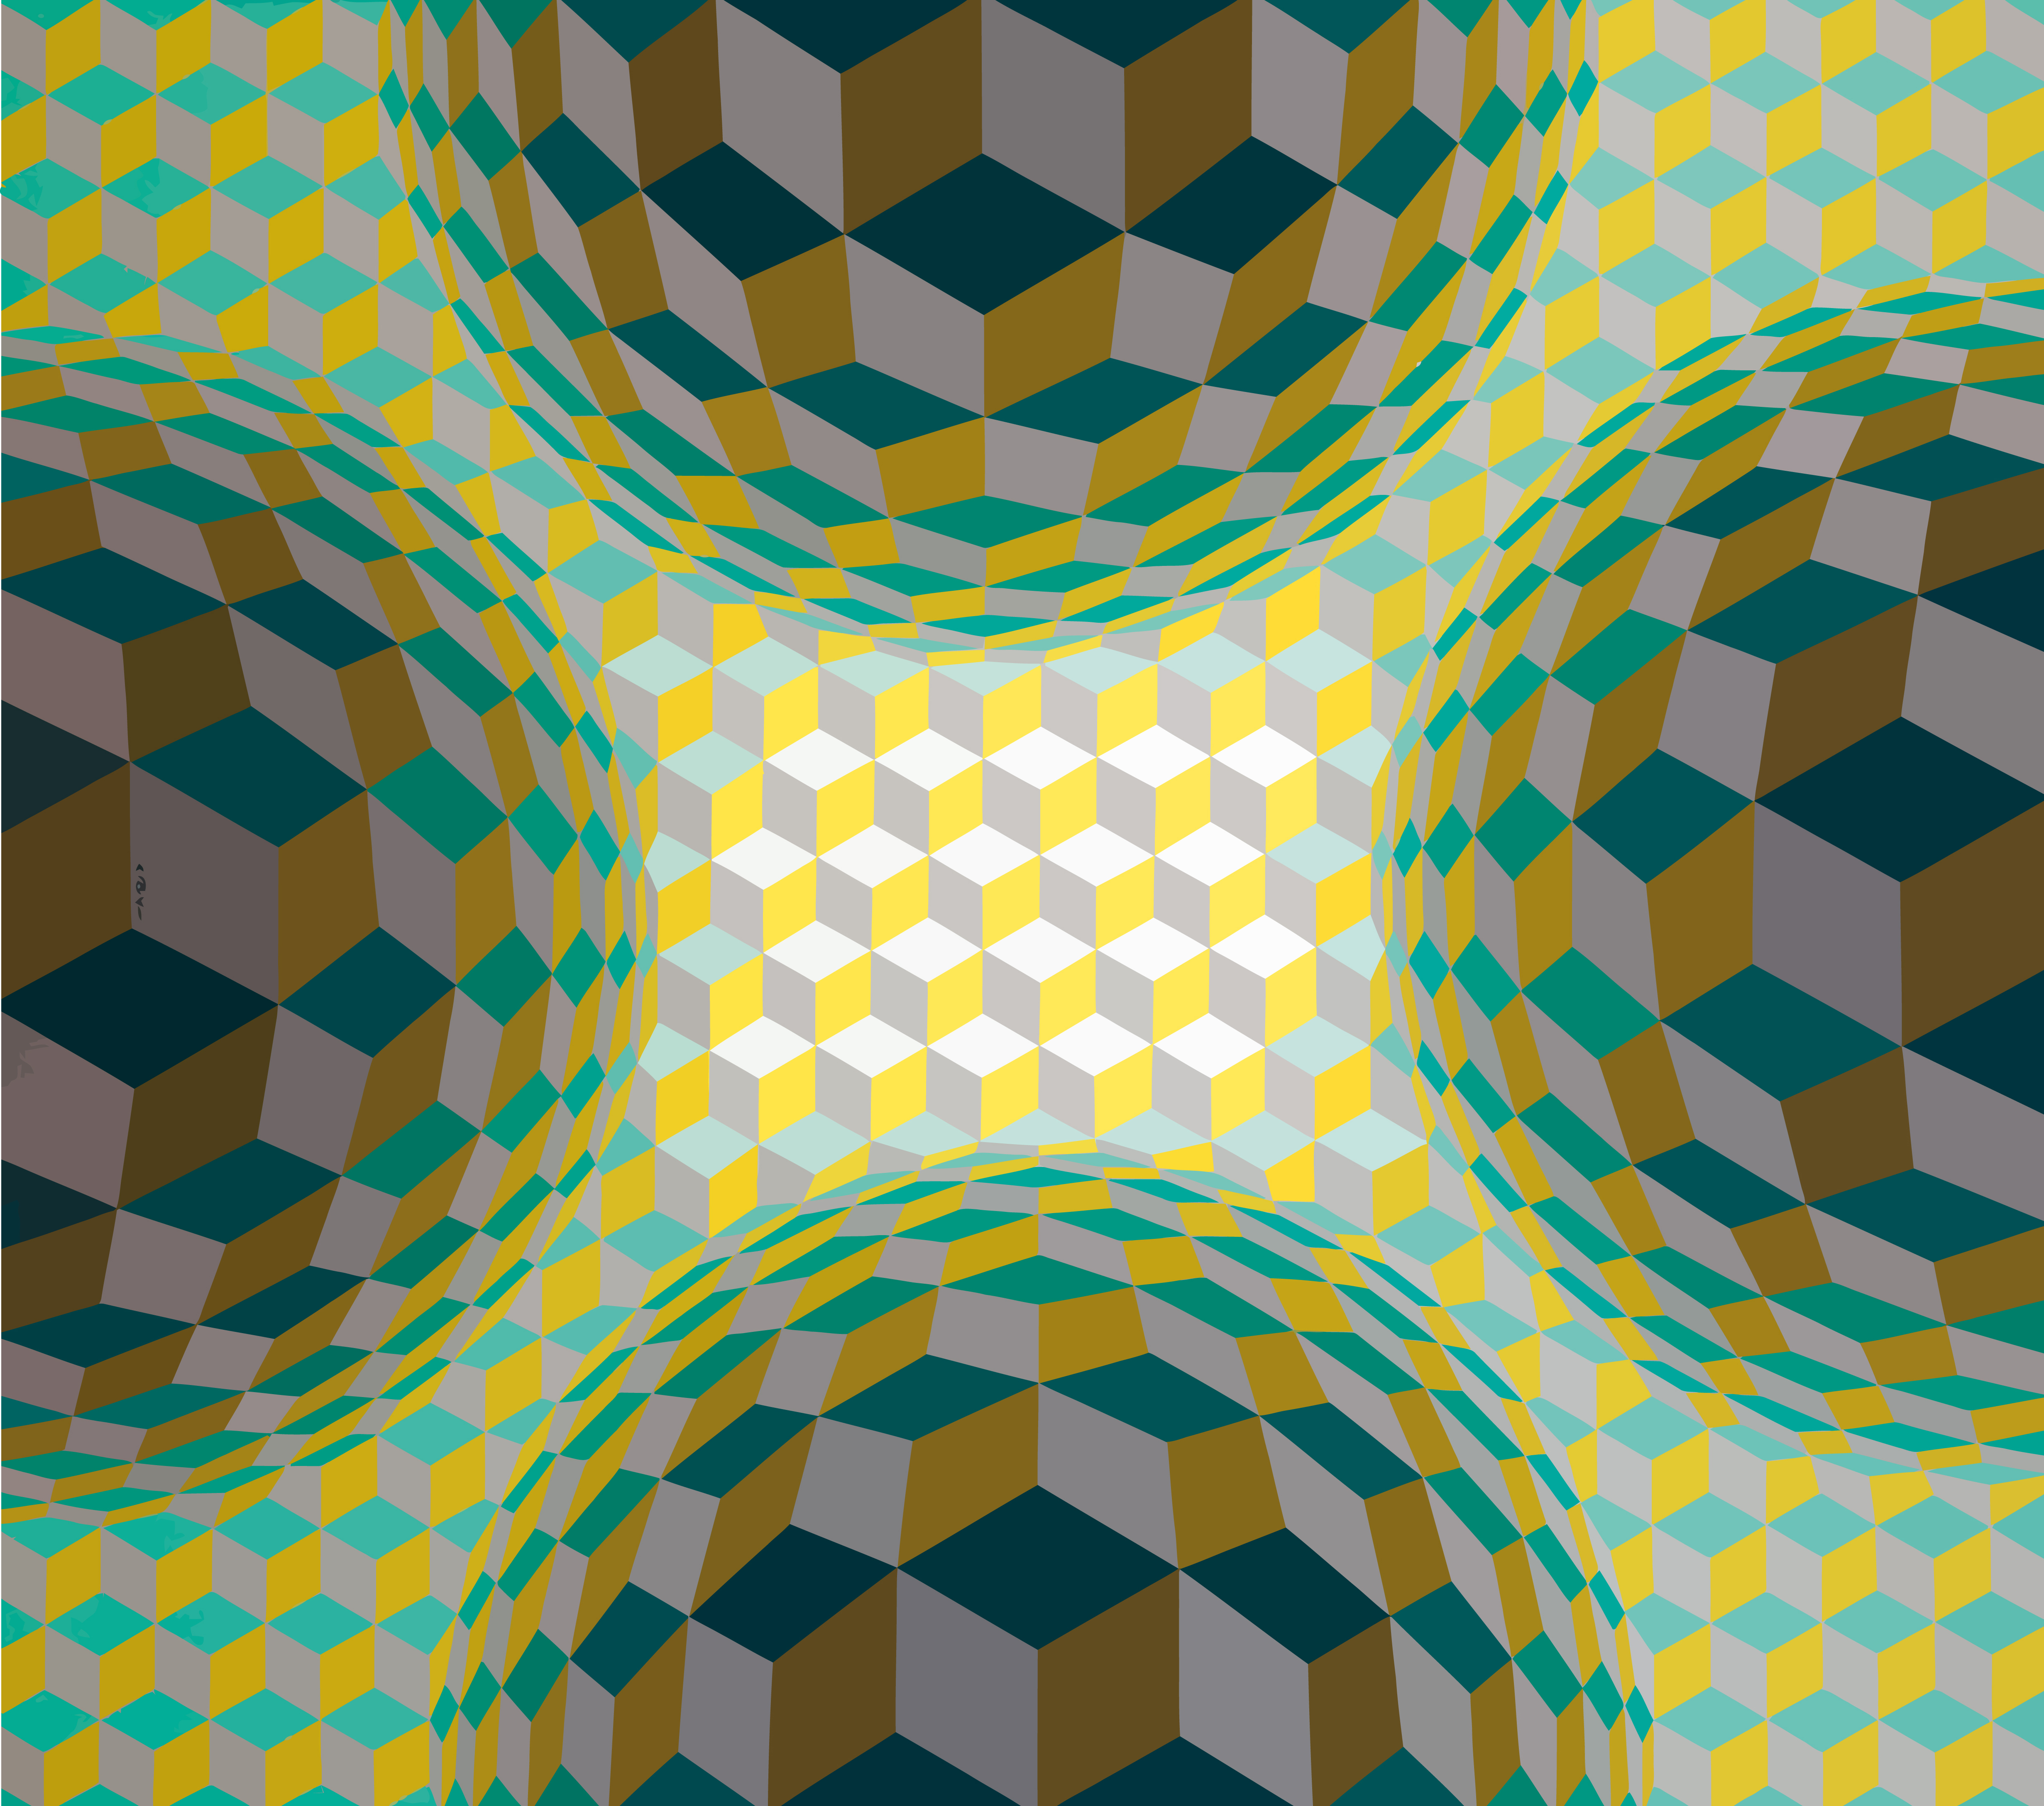 vasarely Art Forms Examples on art language examples, art pattern examples, art drawing examples, art space examples, art technique examples, performance art examples, art shadow examples, art class examples, art statement examples, art balance examples, art value examples, art book examples, art subject examples, art theme examples, art movement examples, art contrast examples, art unity examples, art elements examples, art shape examples, art shading examples,